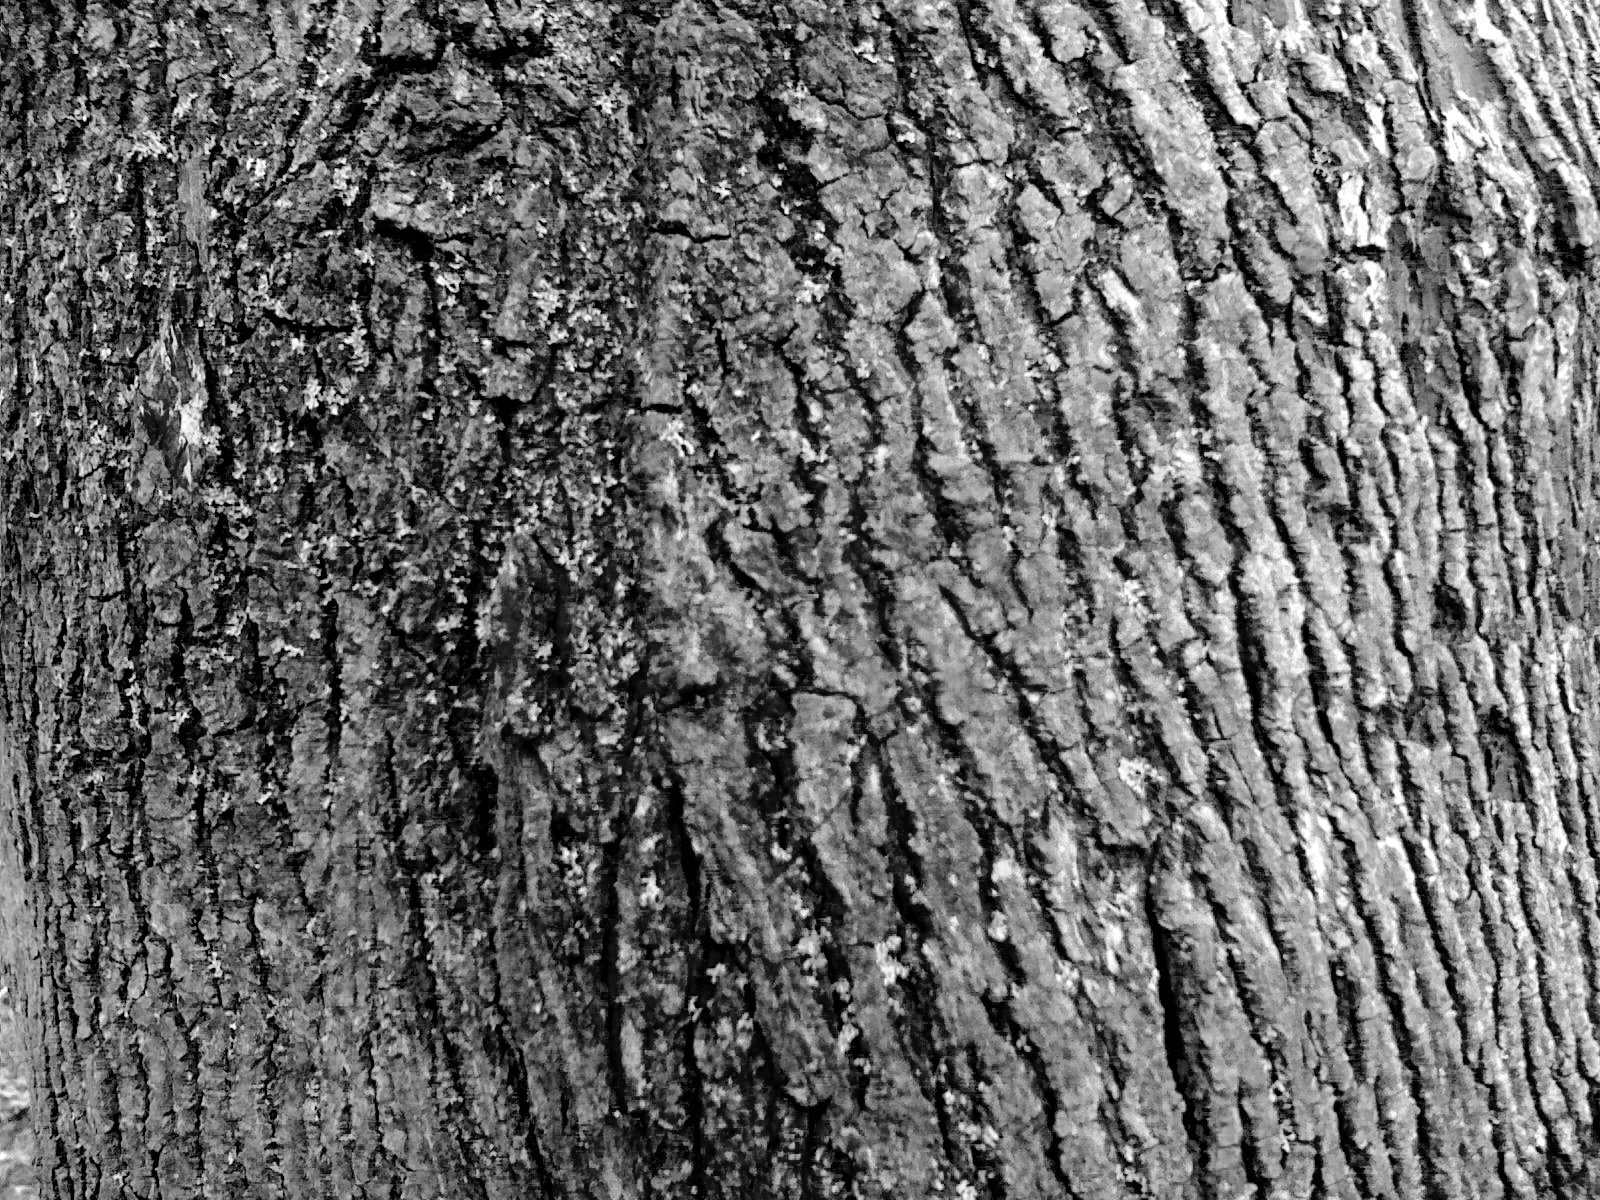 image of bark, image of bark